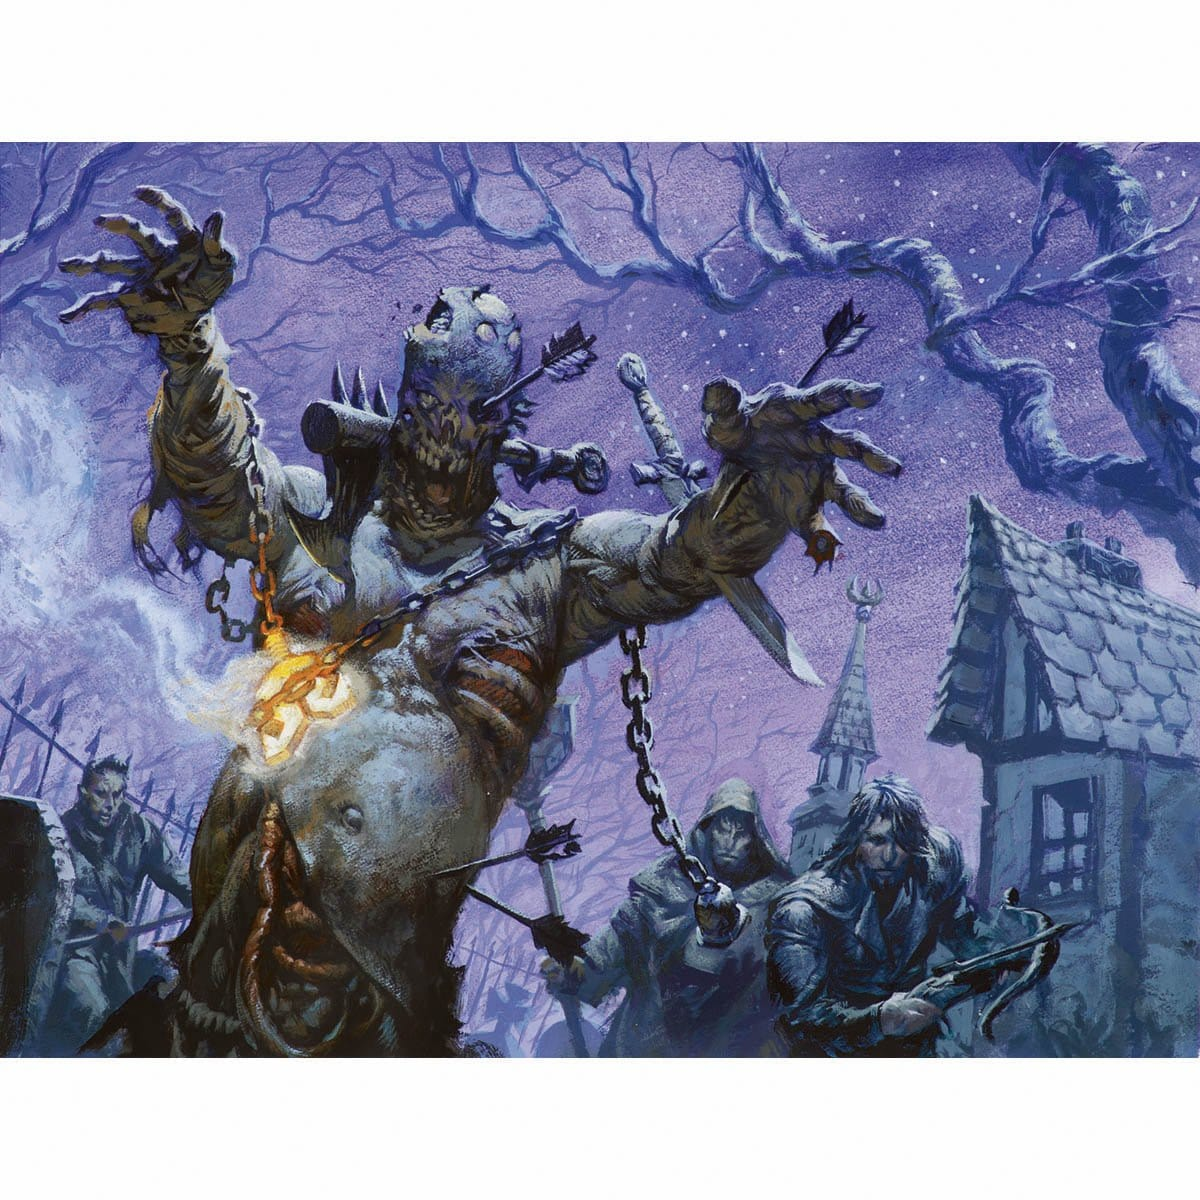 Butcher Ghoul Print - Print - Original Magic Art - Accessories for Magic the Gathering and other card games